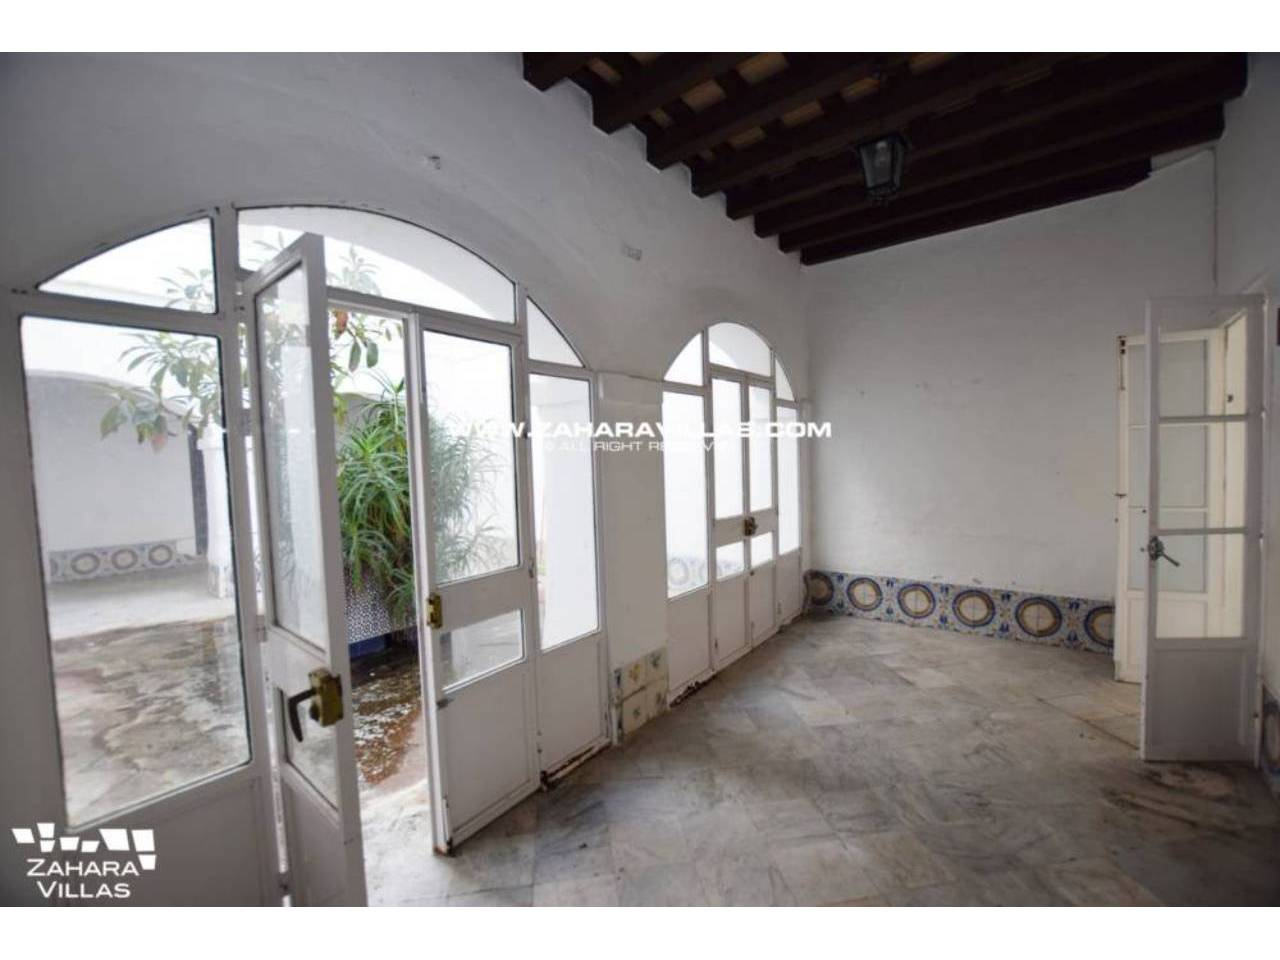 Imagen 7 de Fabulous house, ripe for refurbishment, in the centre of Vejer de la Frontera.